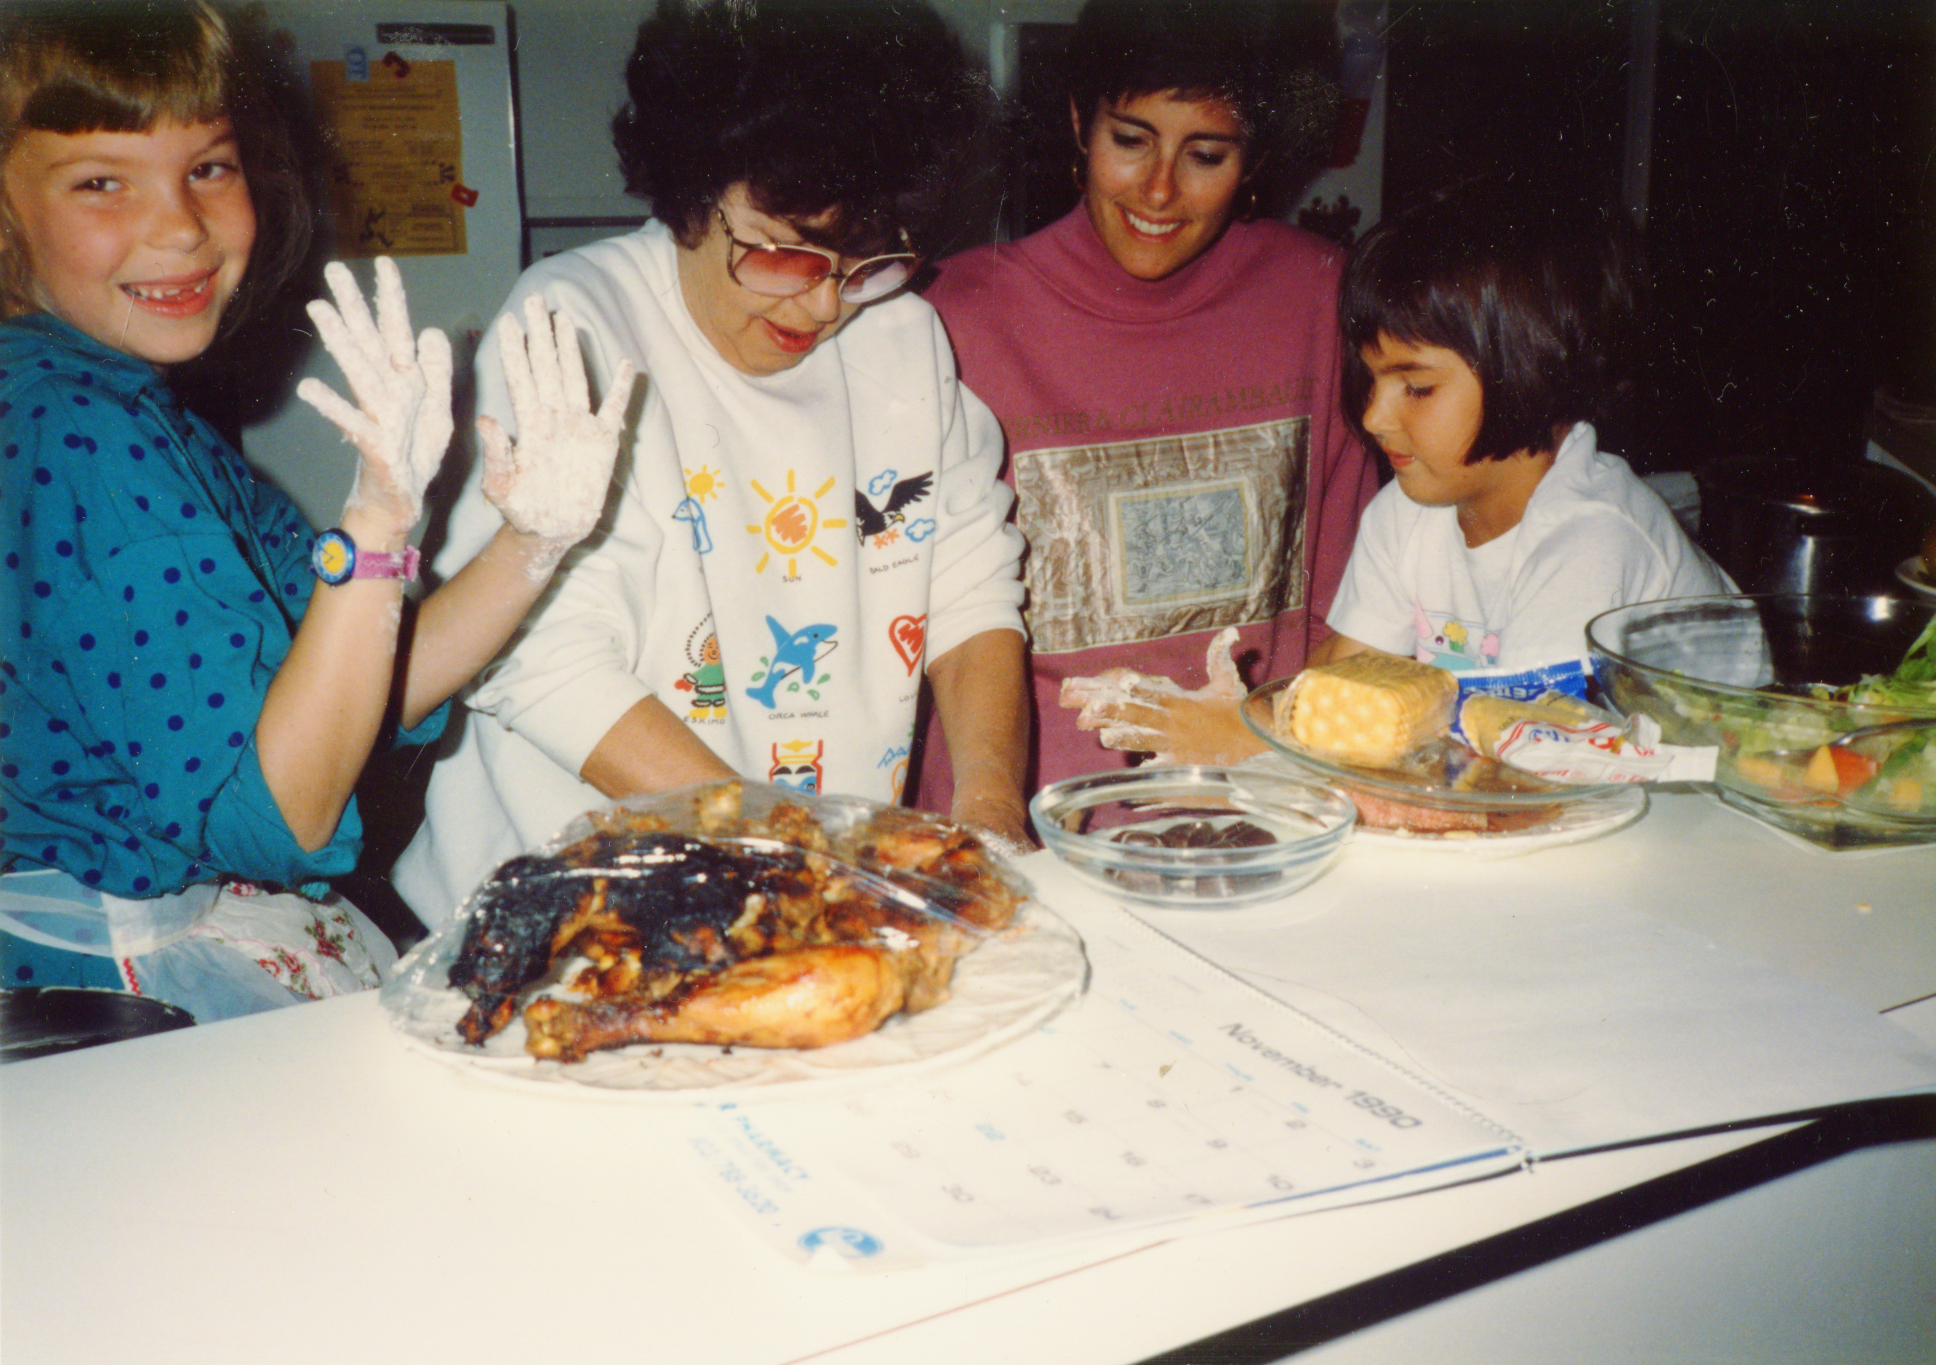 Bluma Goldberg with her daughter, Esther Greenberg, and granddaughters, Leah and Rachel. Image courtesy Esther Goldberg Greenberg